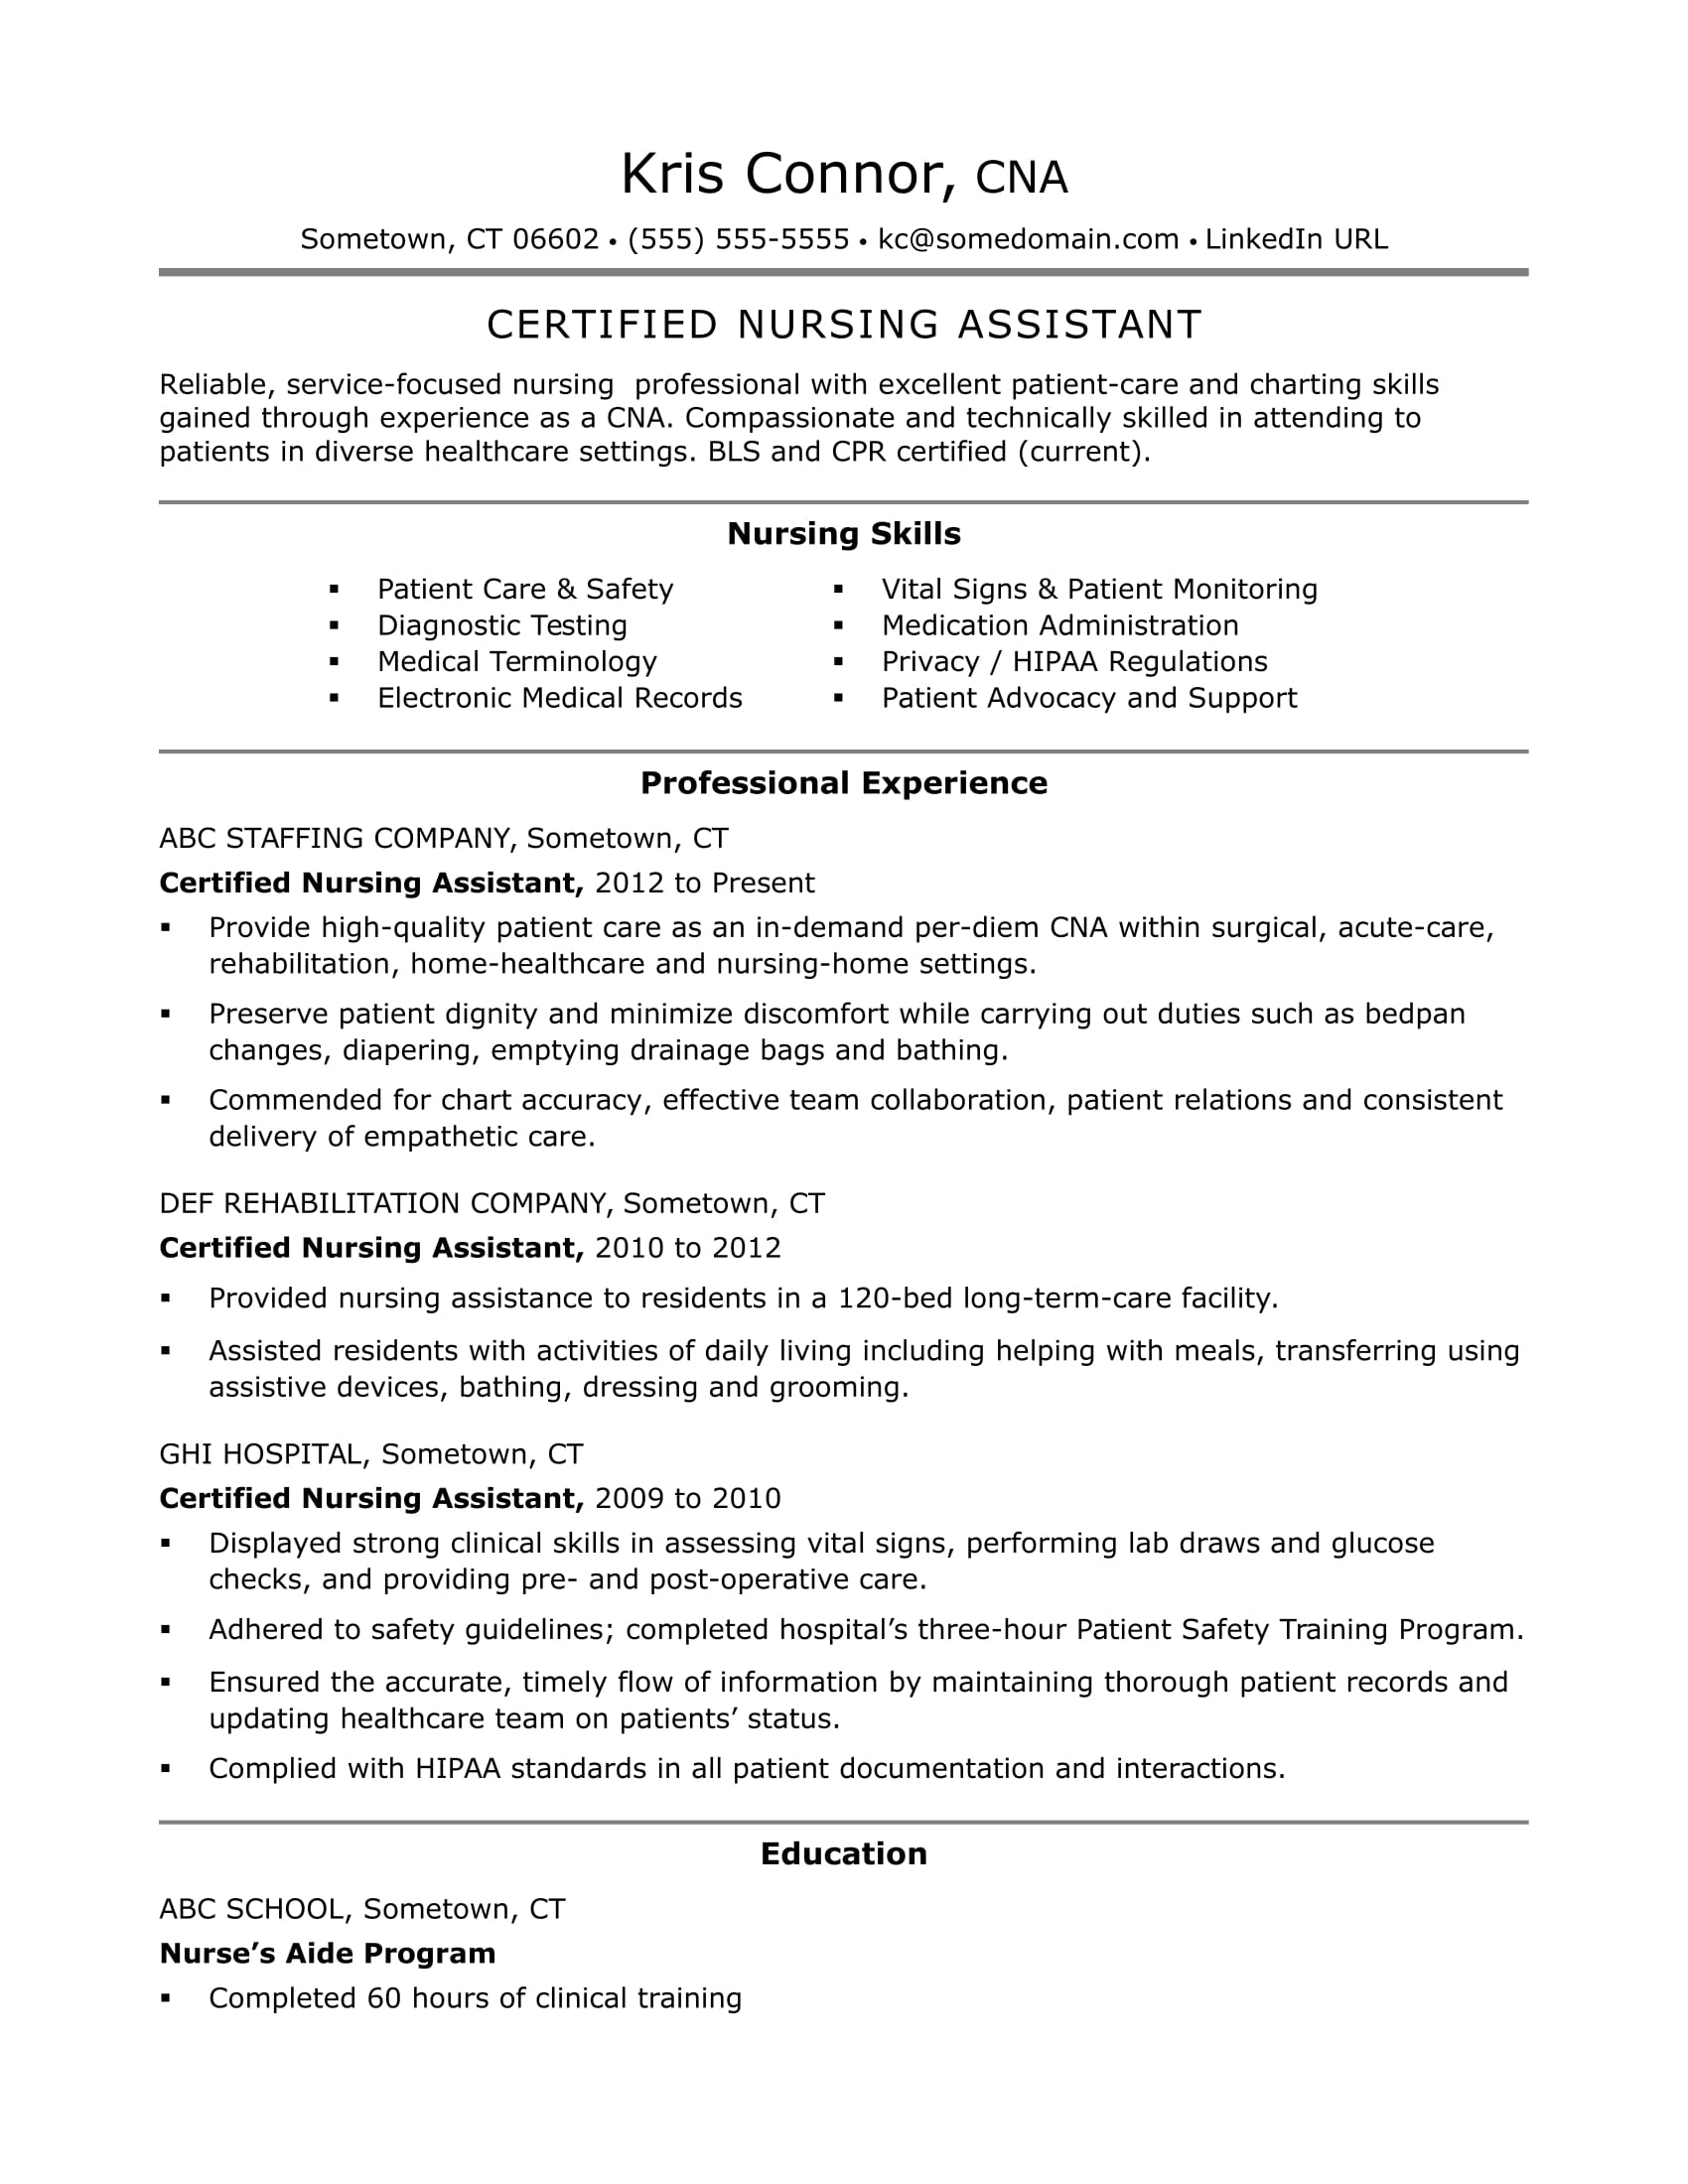 Good Skills To Write On Resume Cna Resume Examples Skills For Cnas Monster